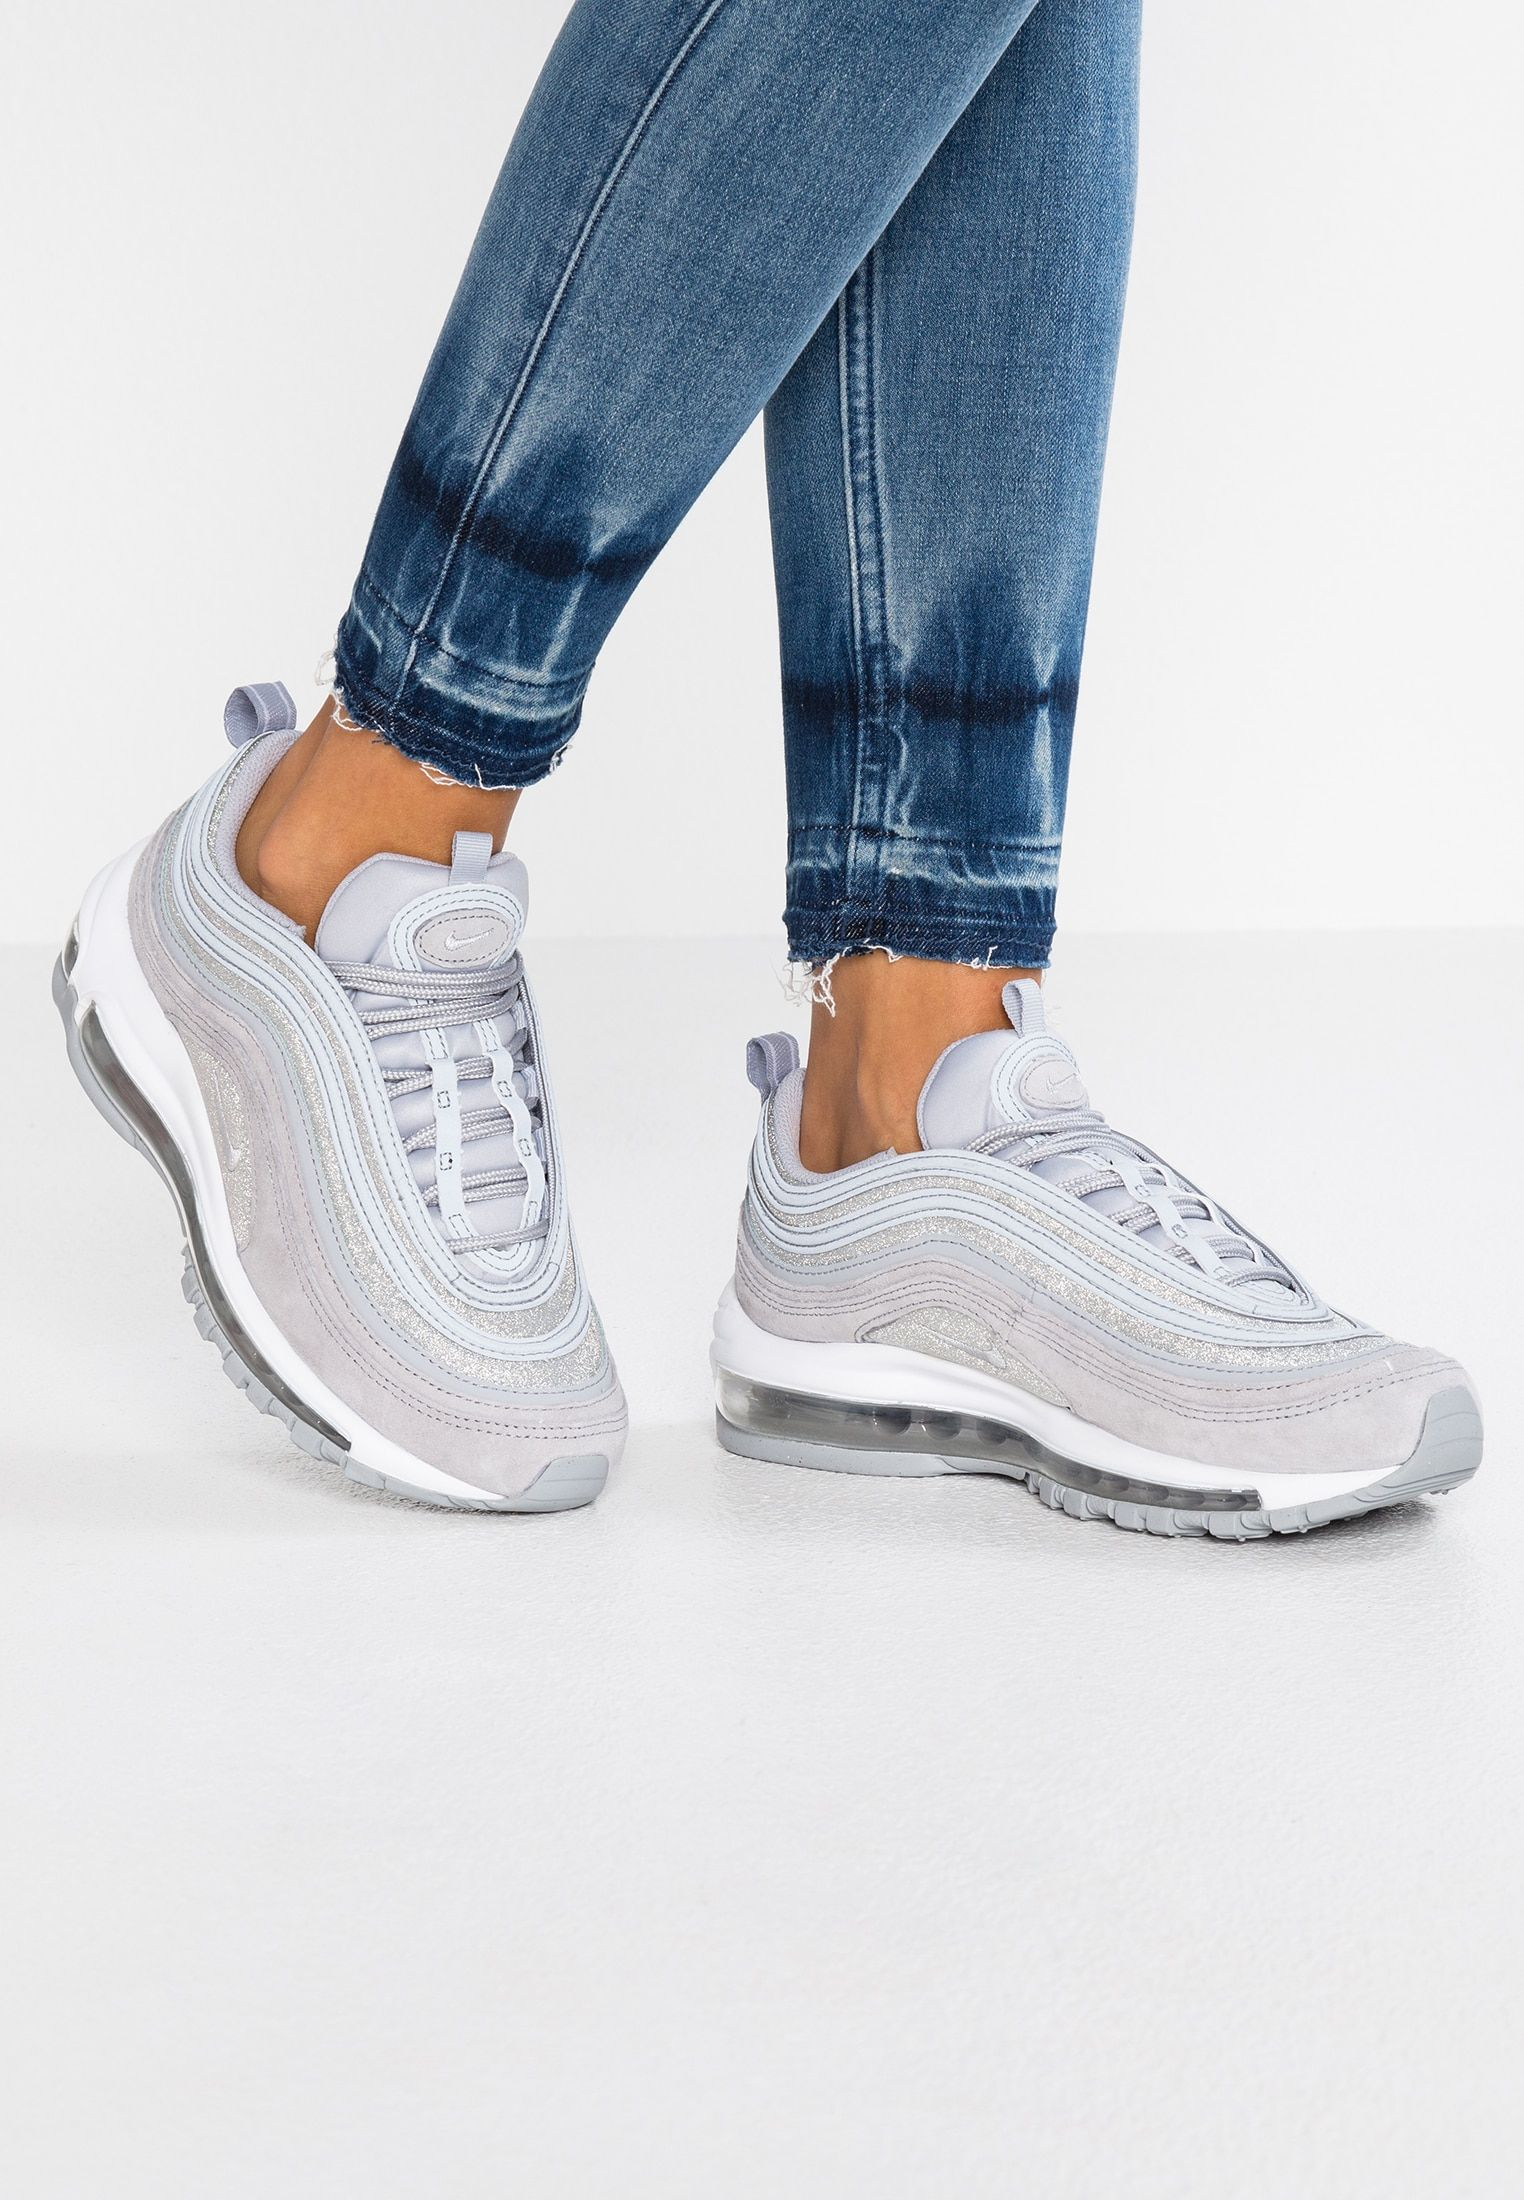 AIR MAX 97 Trainers wolf greywhite @ Zalando.co.uk